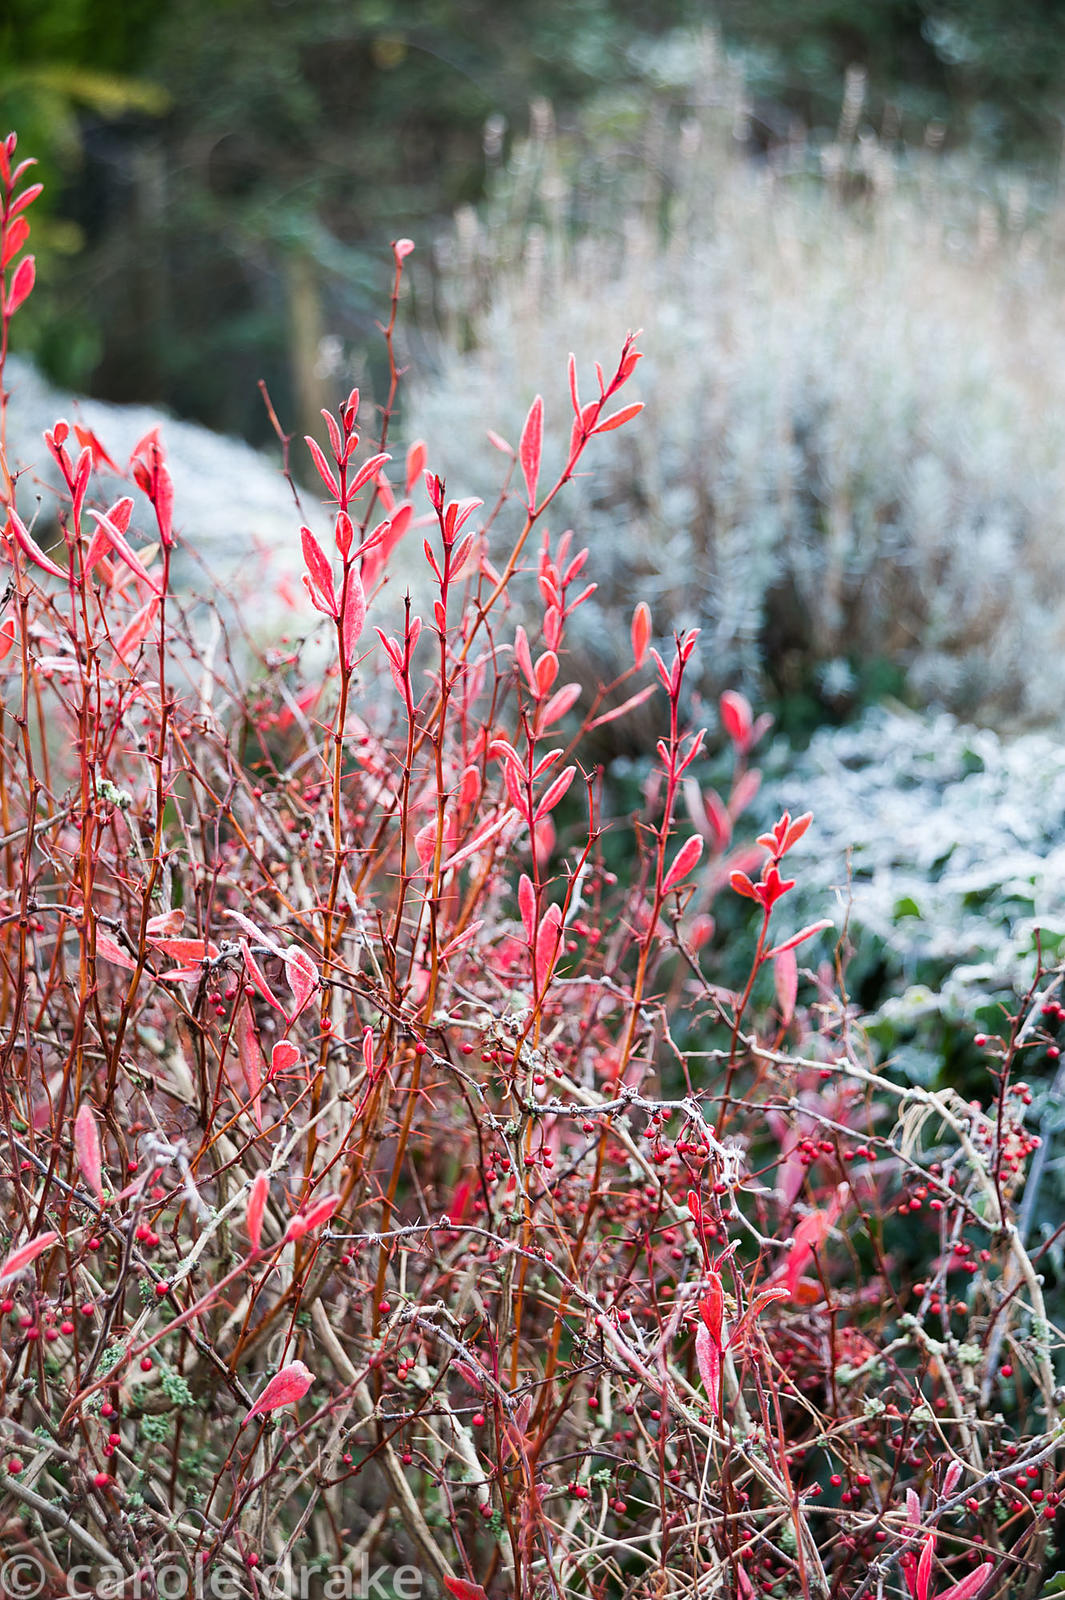 Scarlet berberis in front of frosty ivy on low wall.